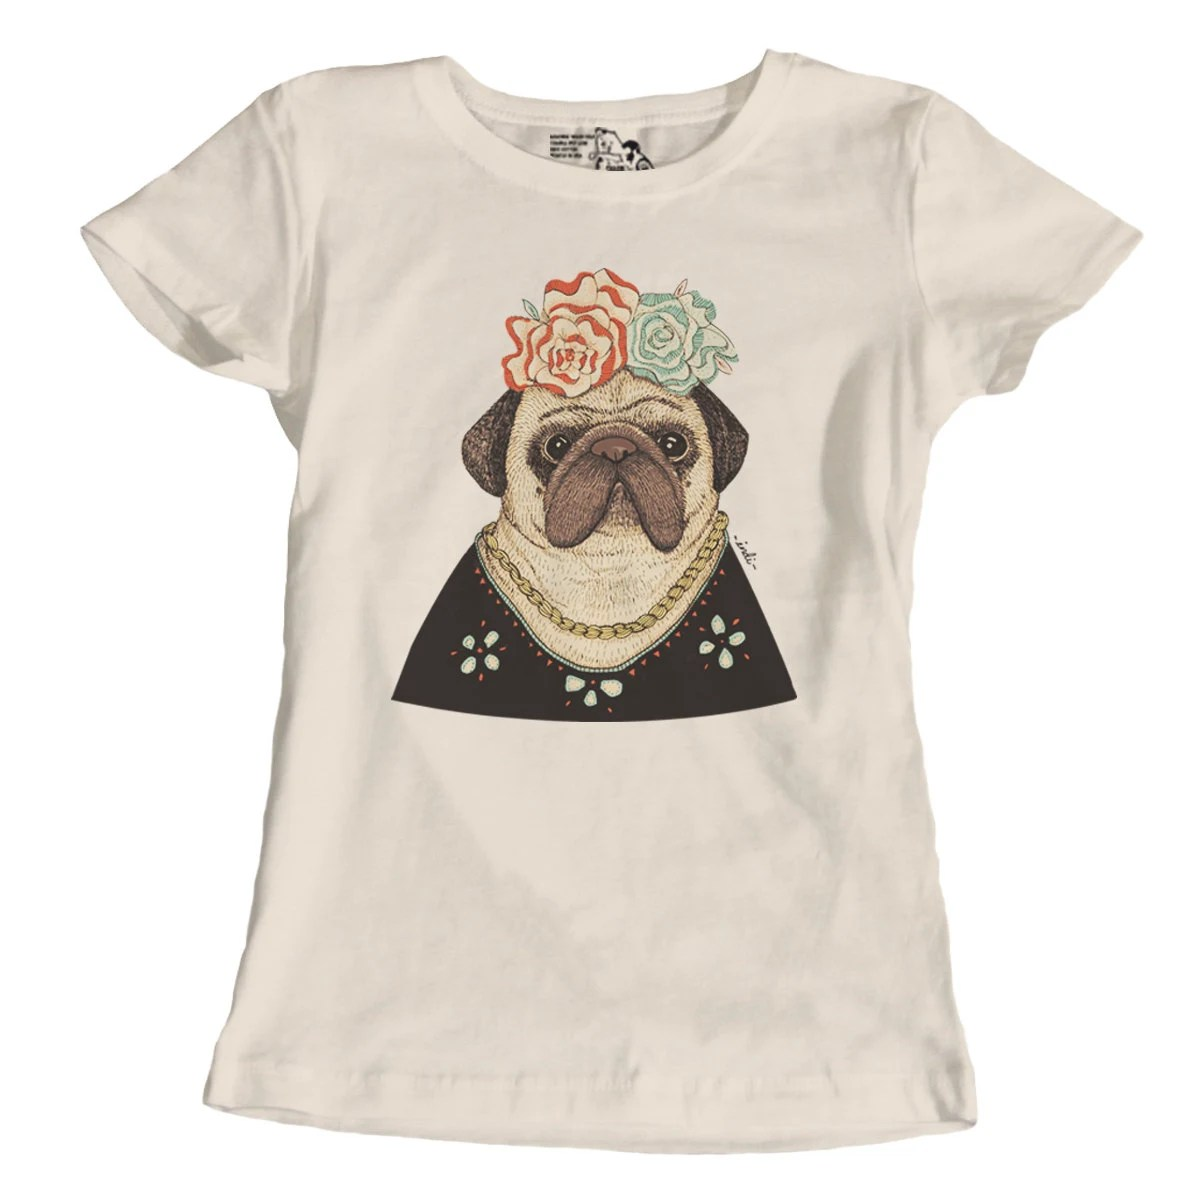 Gift For New Homeowner Woman Pug Shirt Women Funny Moody Pug Tee Shirt Pug Owner Gift